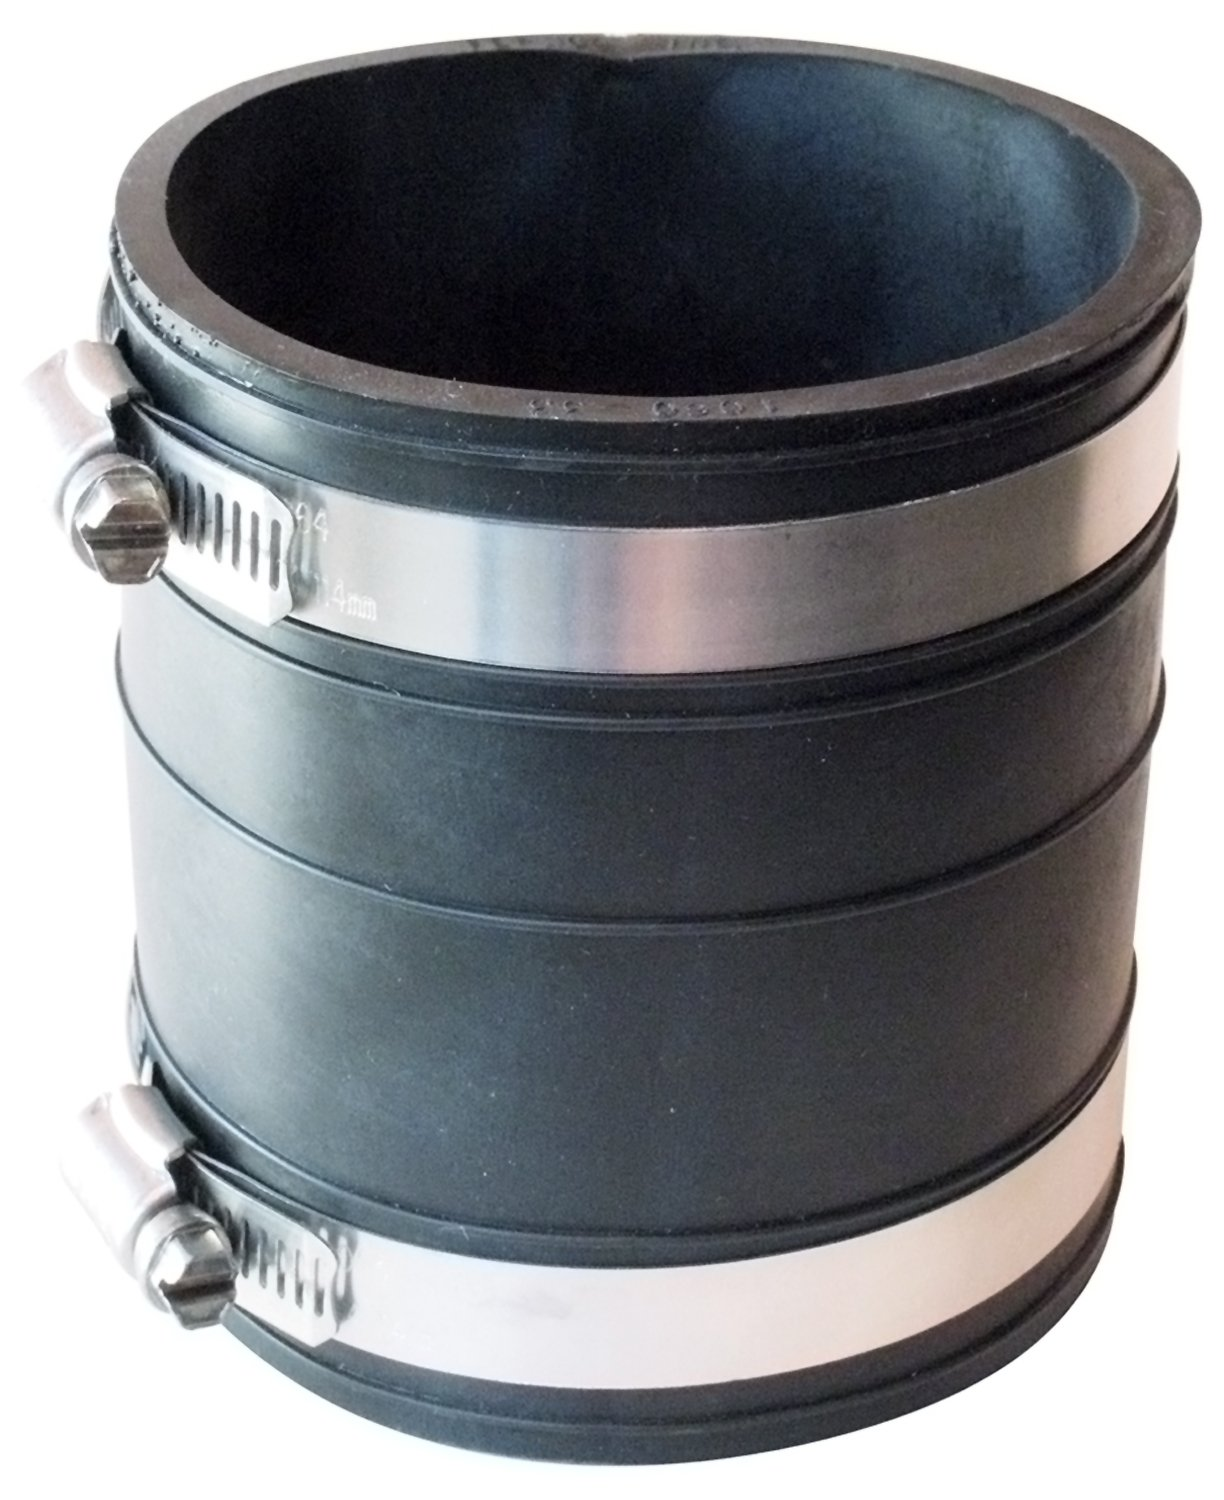 Fernco P1060-33 3-Inch by 3-Inch Rubber Flexible Socket Coupling Repair Fitting Fernco Inc. 418475